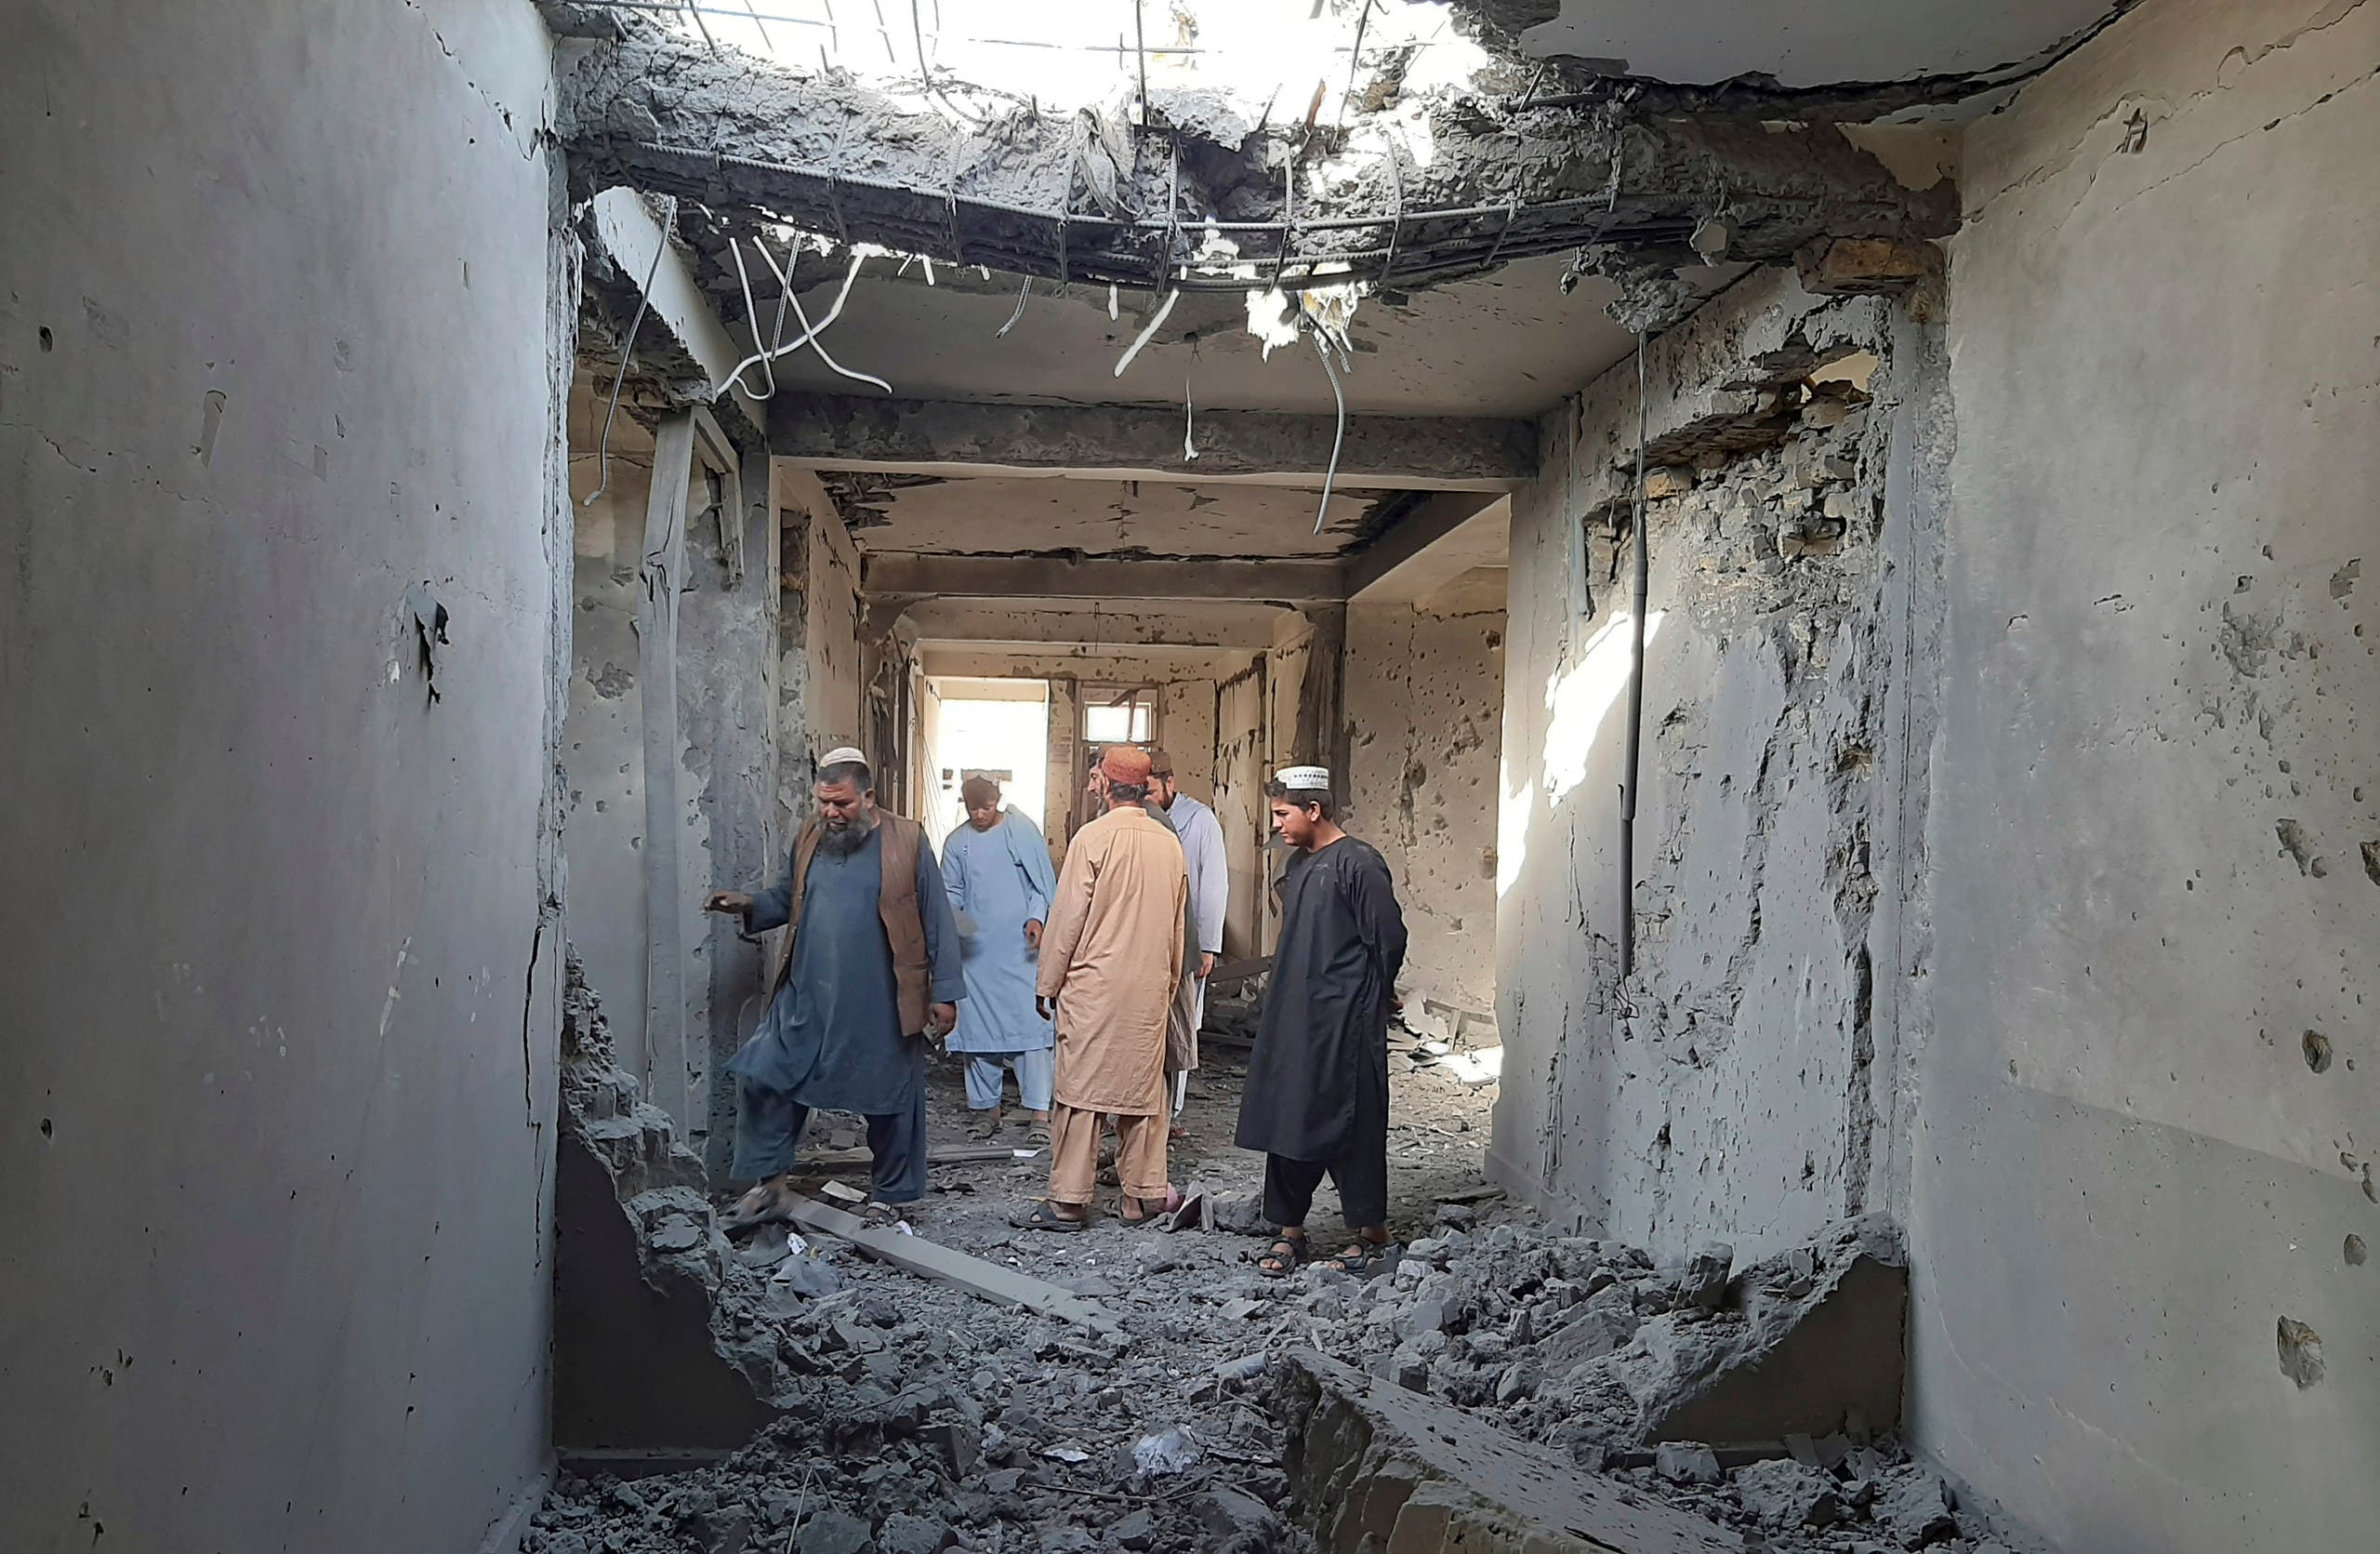 Afghans inspect a damaged clinic after airstrikes in Lashkar Gah city of Helmand province, southern of Kabul, Afghanistan, Sunday, Aug. 8, 2021. Airstrikes in southern Afghanistan damaged a health care clinic and high school in the capital of Helmand province, a provincial council member said Sunday. (AP)